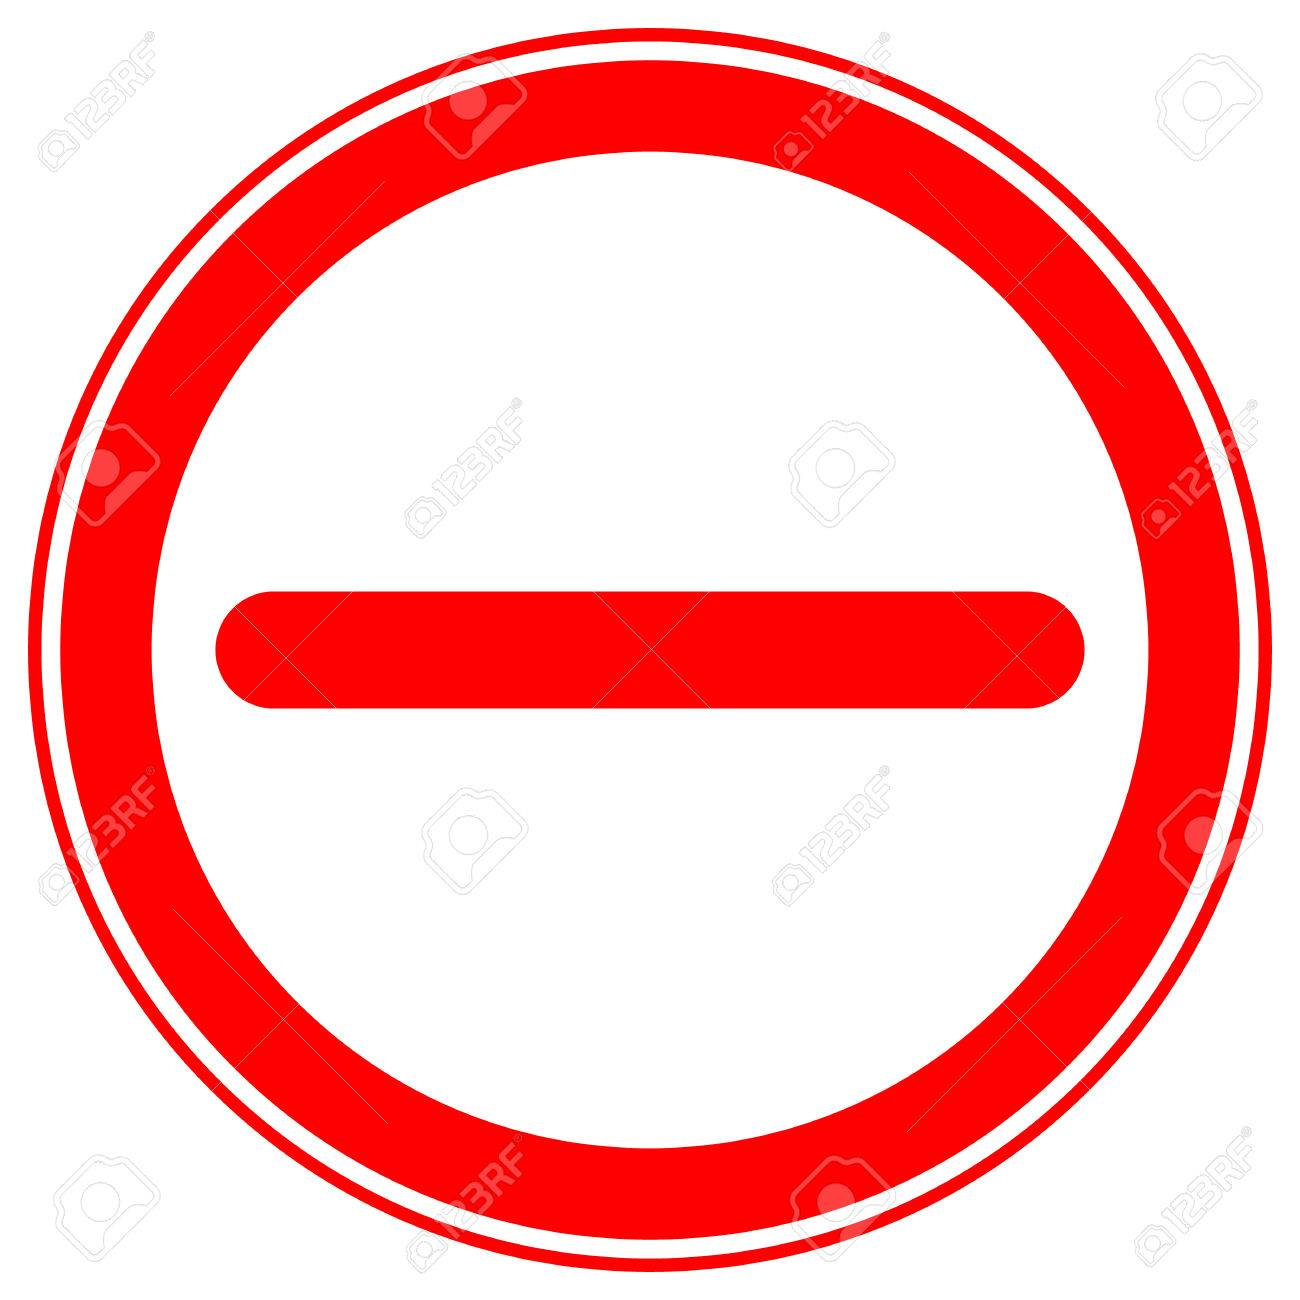 image about Printable Road Sign named Printable restriction, prohibition signs or symptoms, prohibitive street signs and symptoms